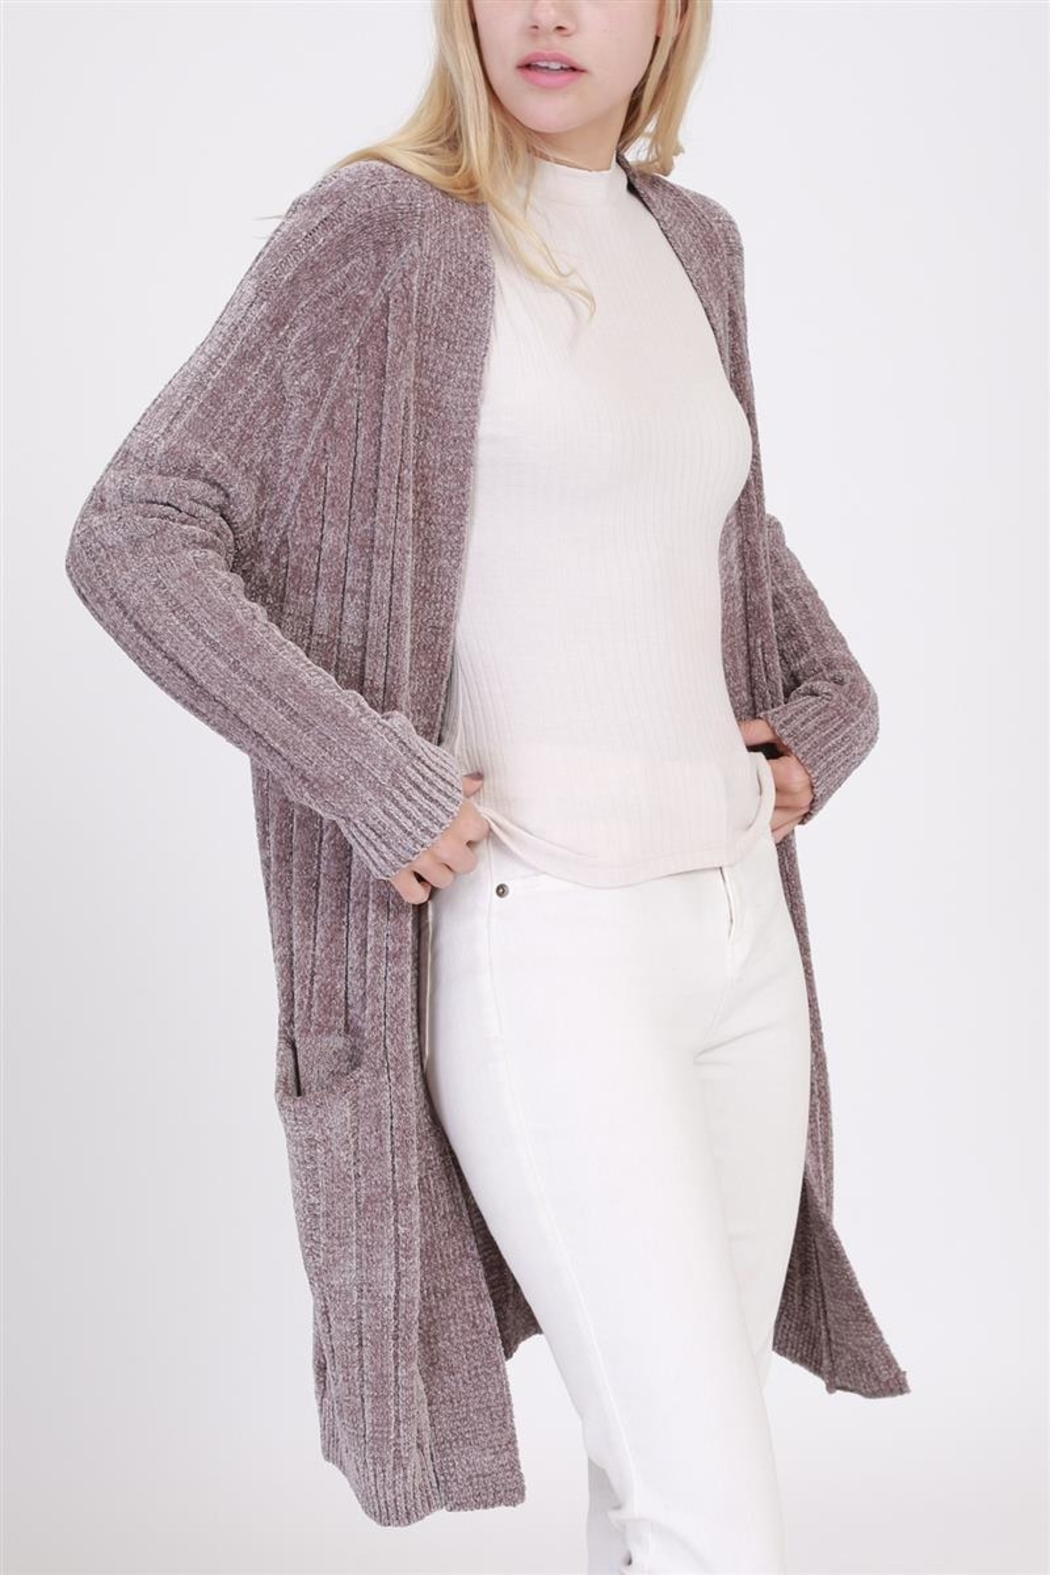 HYFVE Soft Cardigan Sweater from New York City by Dor L'Dor ...